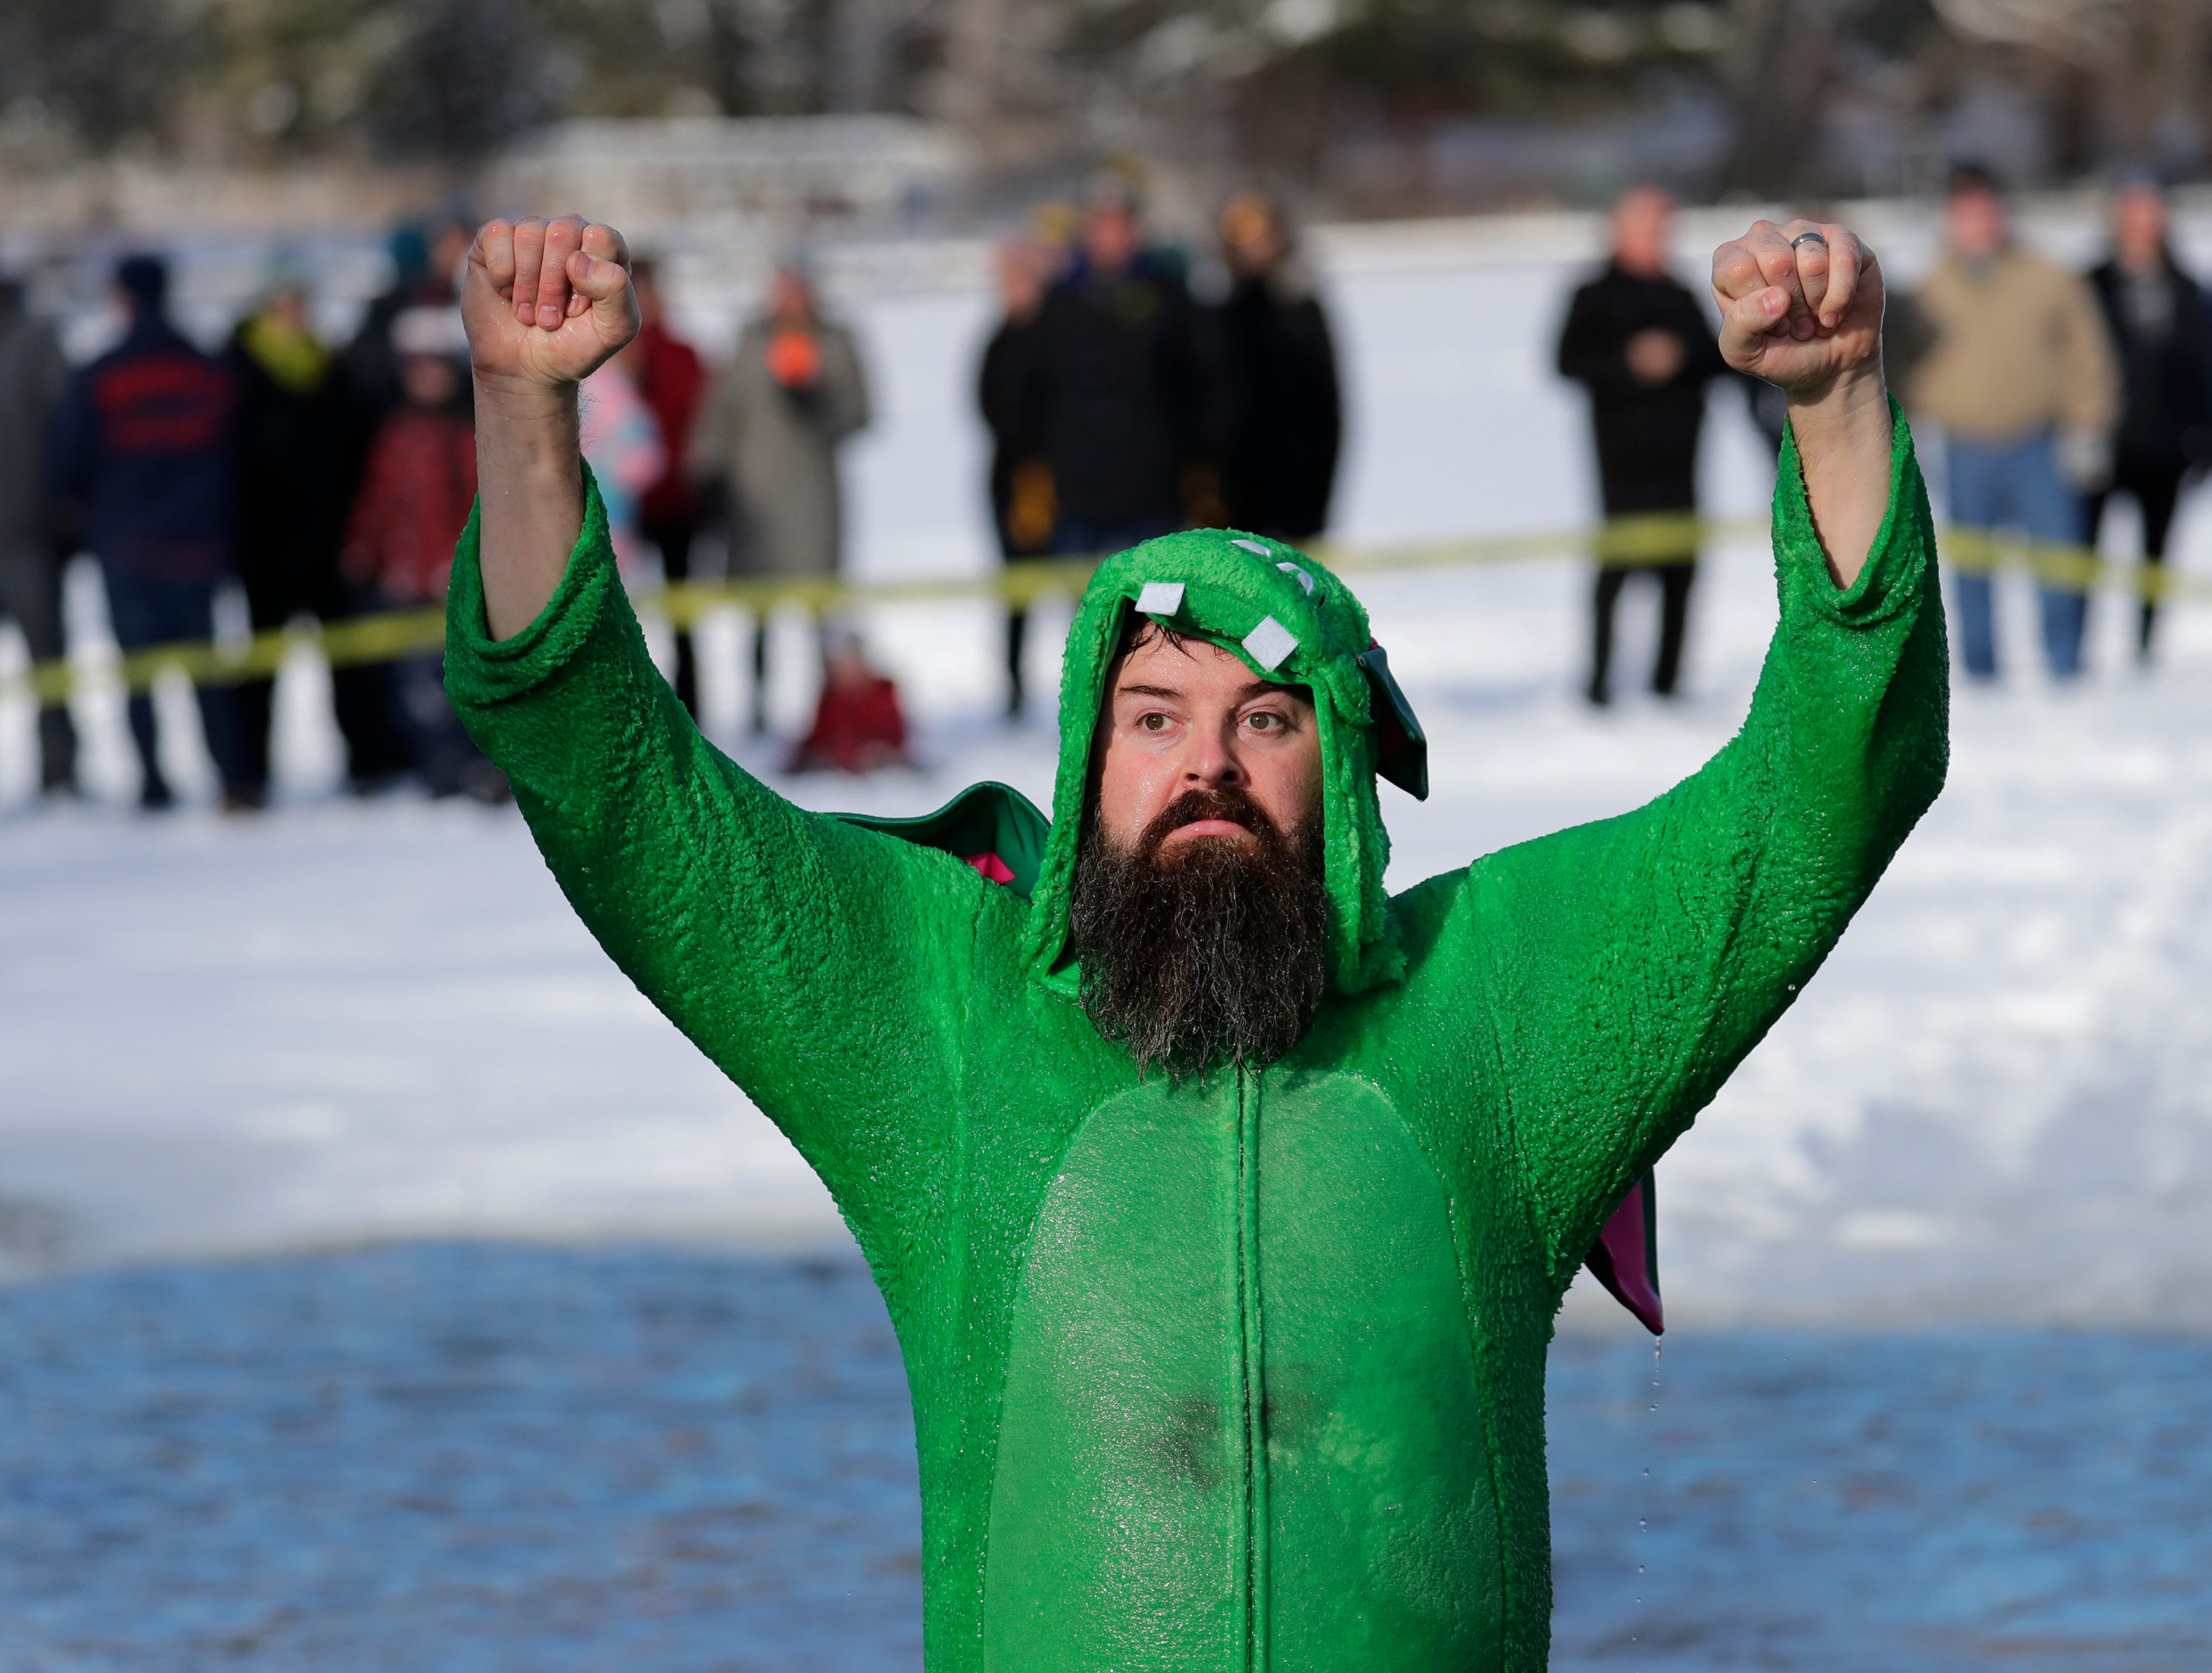 Danny Fili of Waupaca celebrates after jumping into frigid water during the Polar Bear Plunge Tuesday, January 1, 2019, at Becker Marine on Lime Kiln Lake in Waupaca, Wis. 